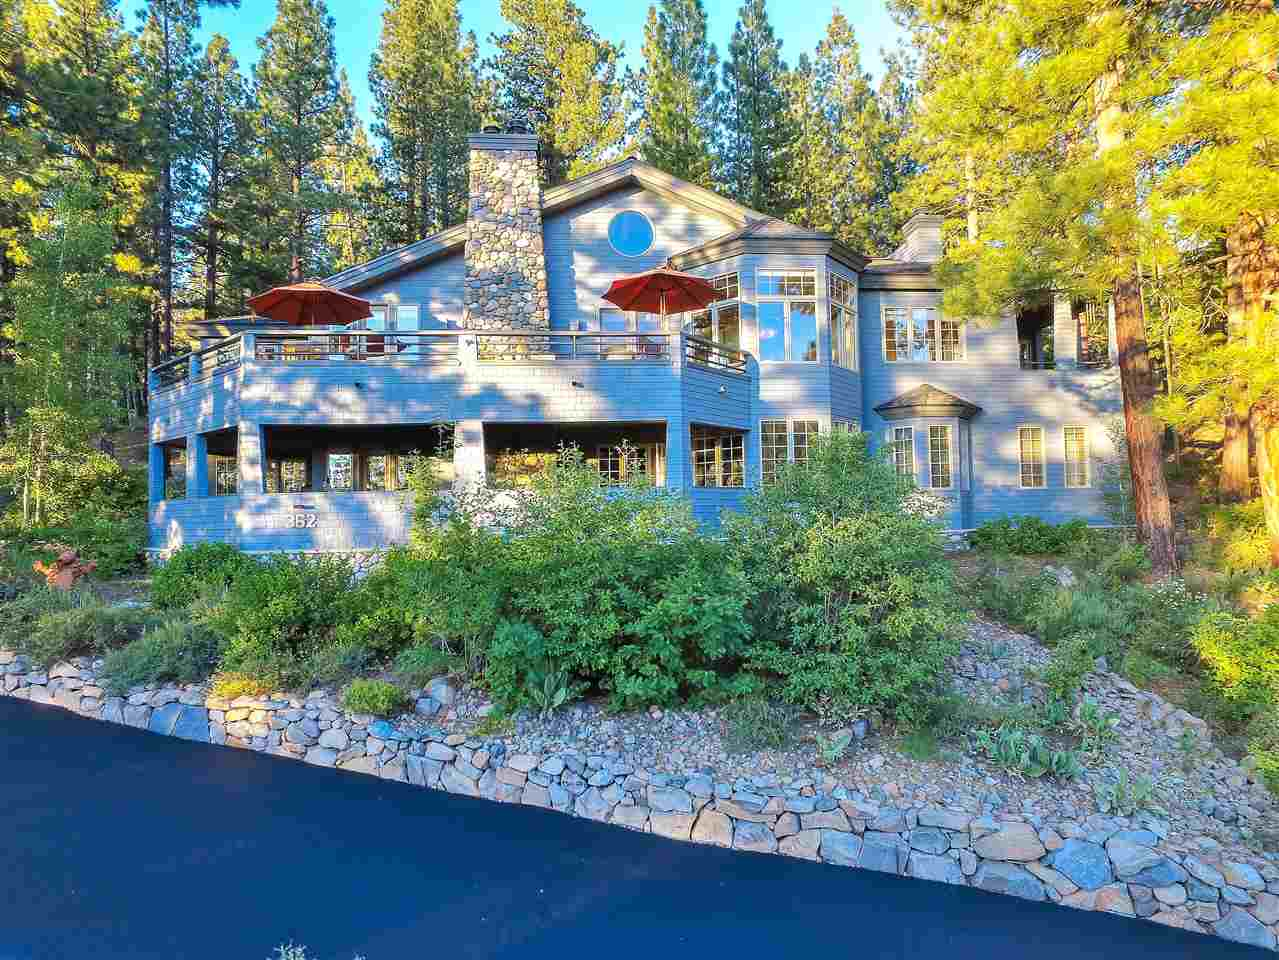 Single Family Home for Active at 362 Skidder Trail 362 Skidder Trail Truckee, California 96161 United States